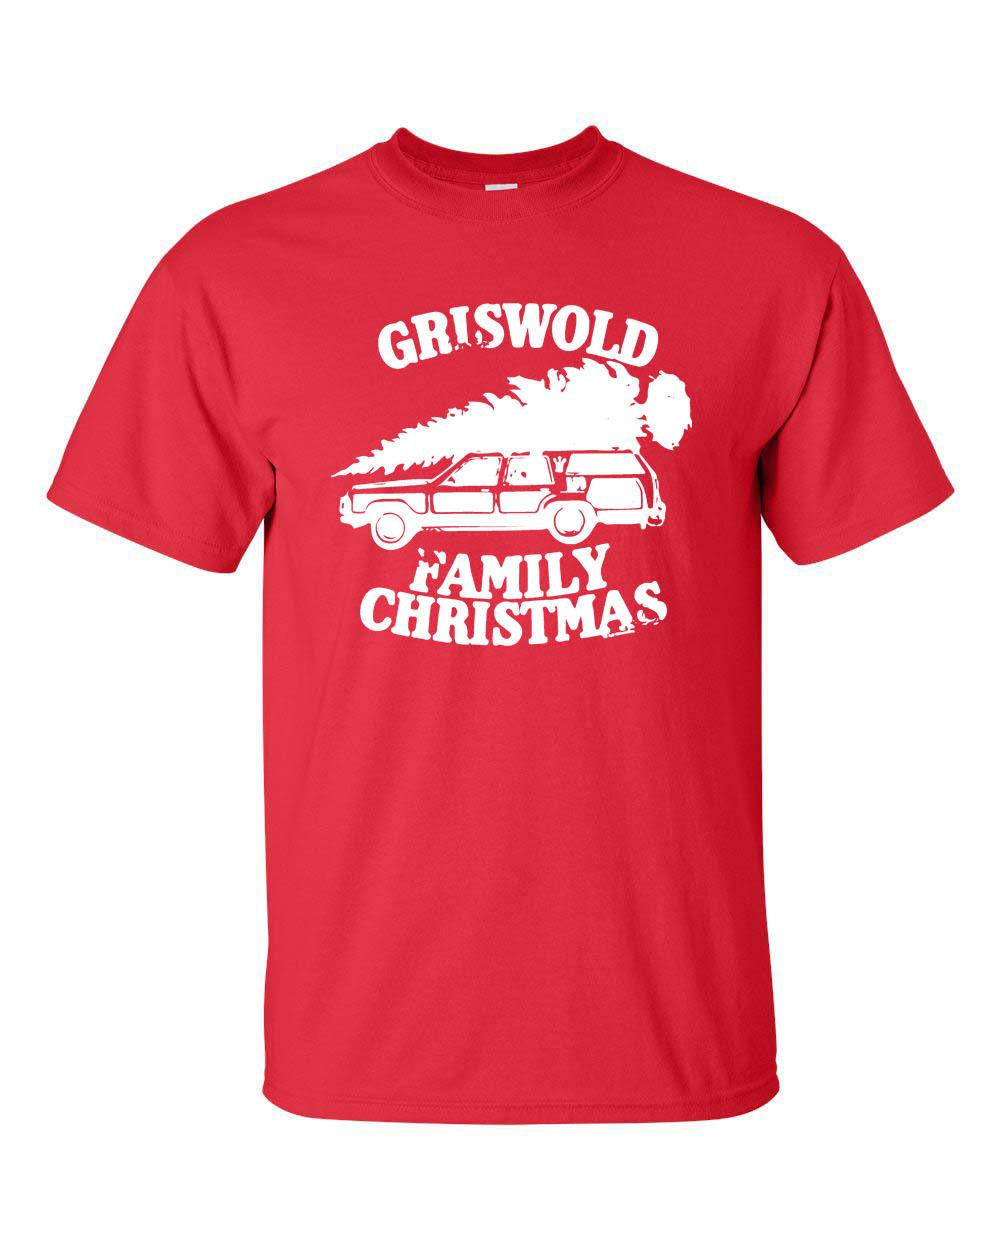 griswold family christmas vacation national lampoon movie car men tee shirt 588 t shirts buy shirt t from moonprinted 1156 dhgatecom